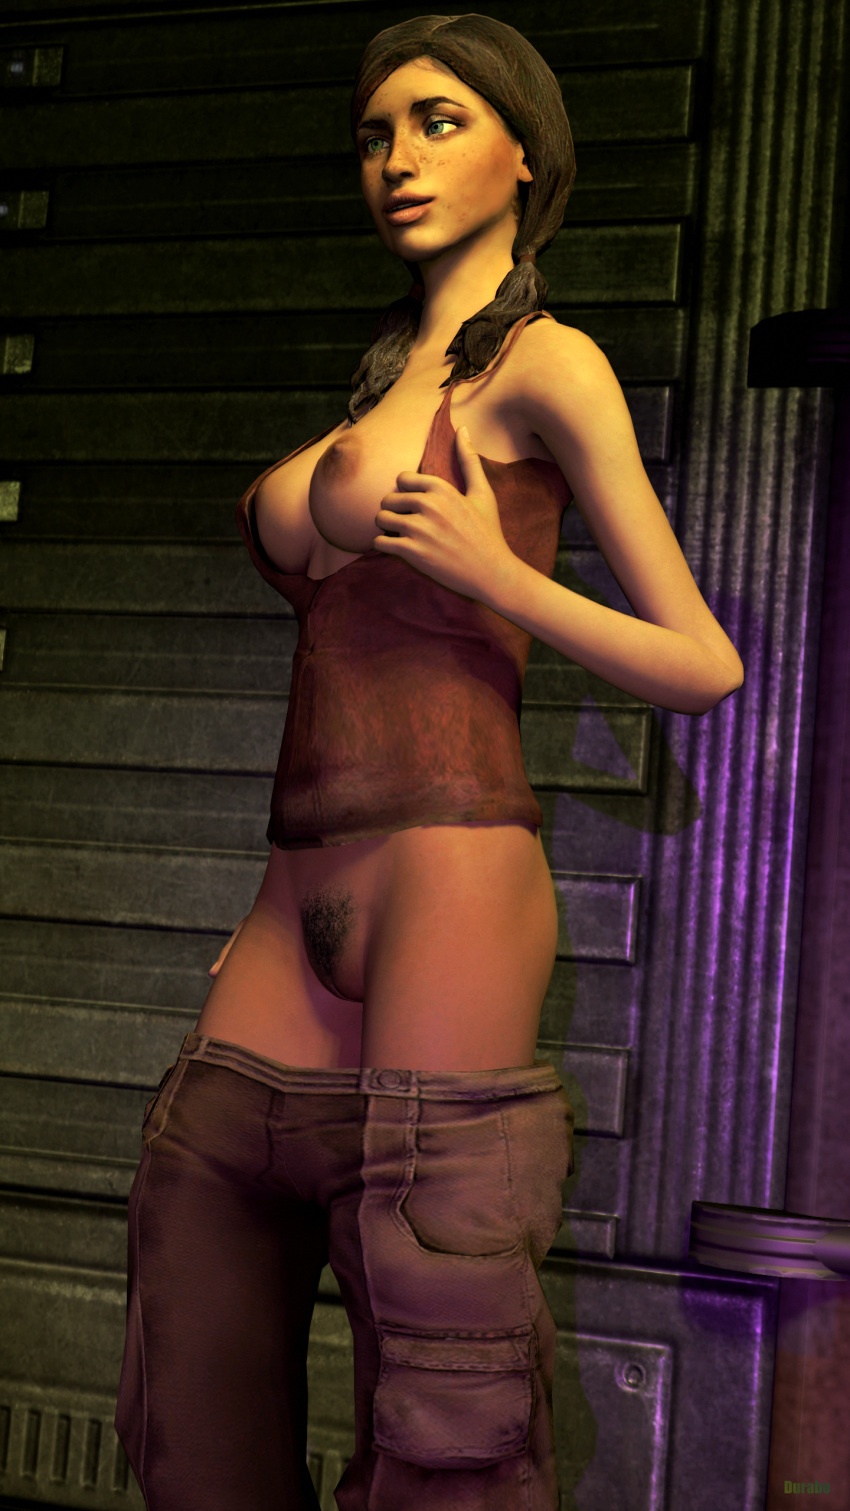 Dead space ellie nude sex photo